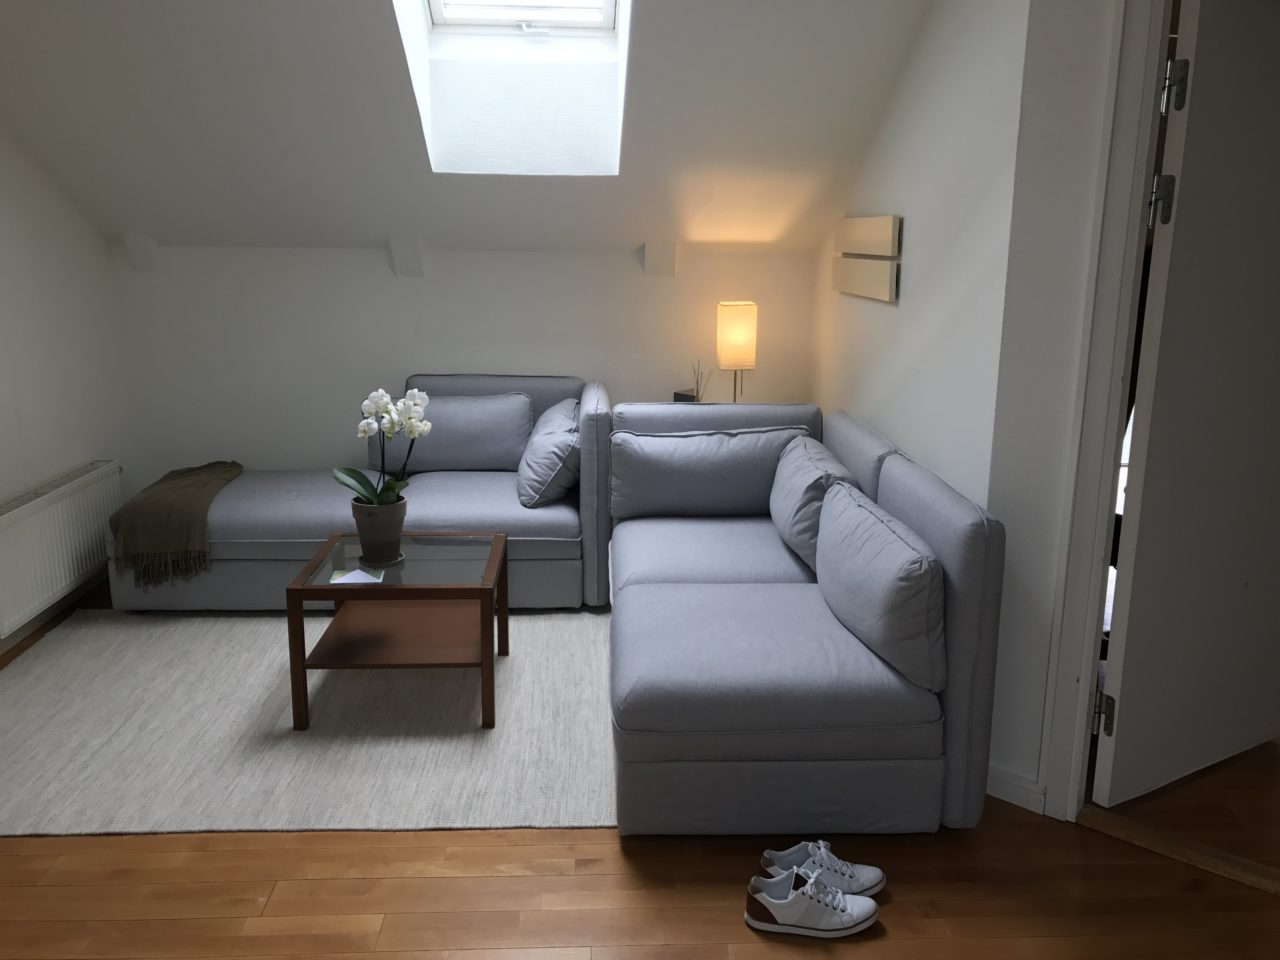 Bright Lounge With Skylight Window And Shoes On The Floor